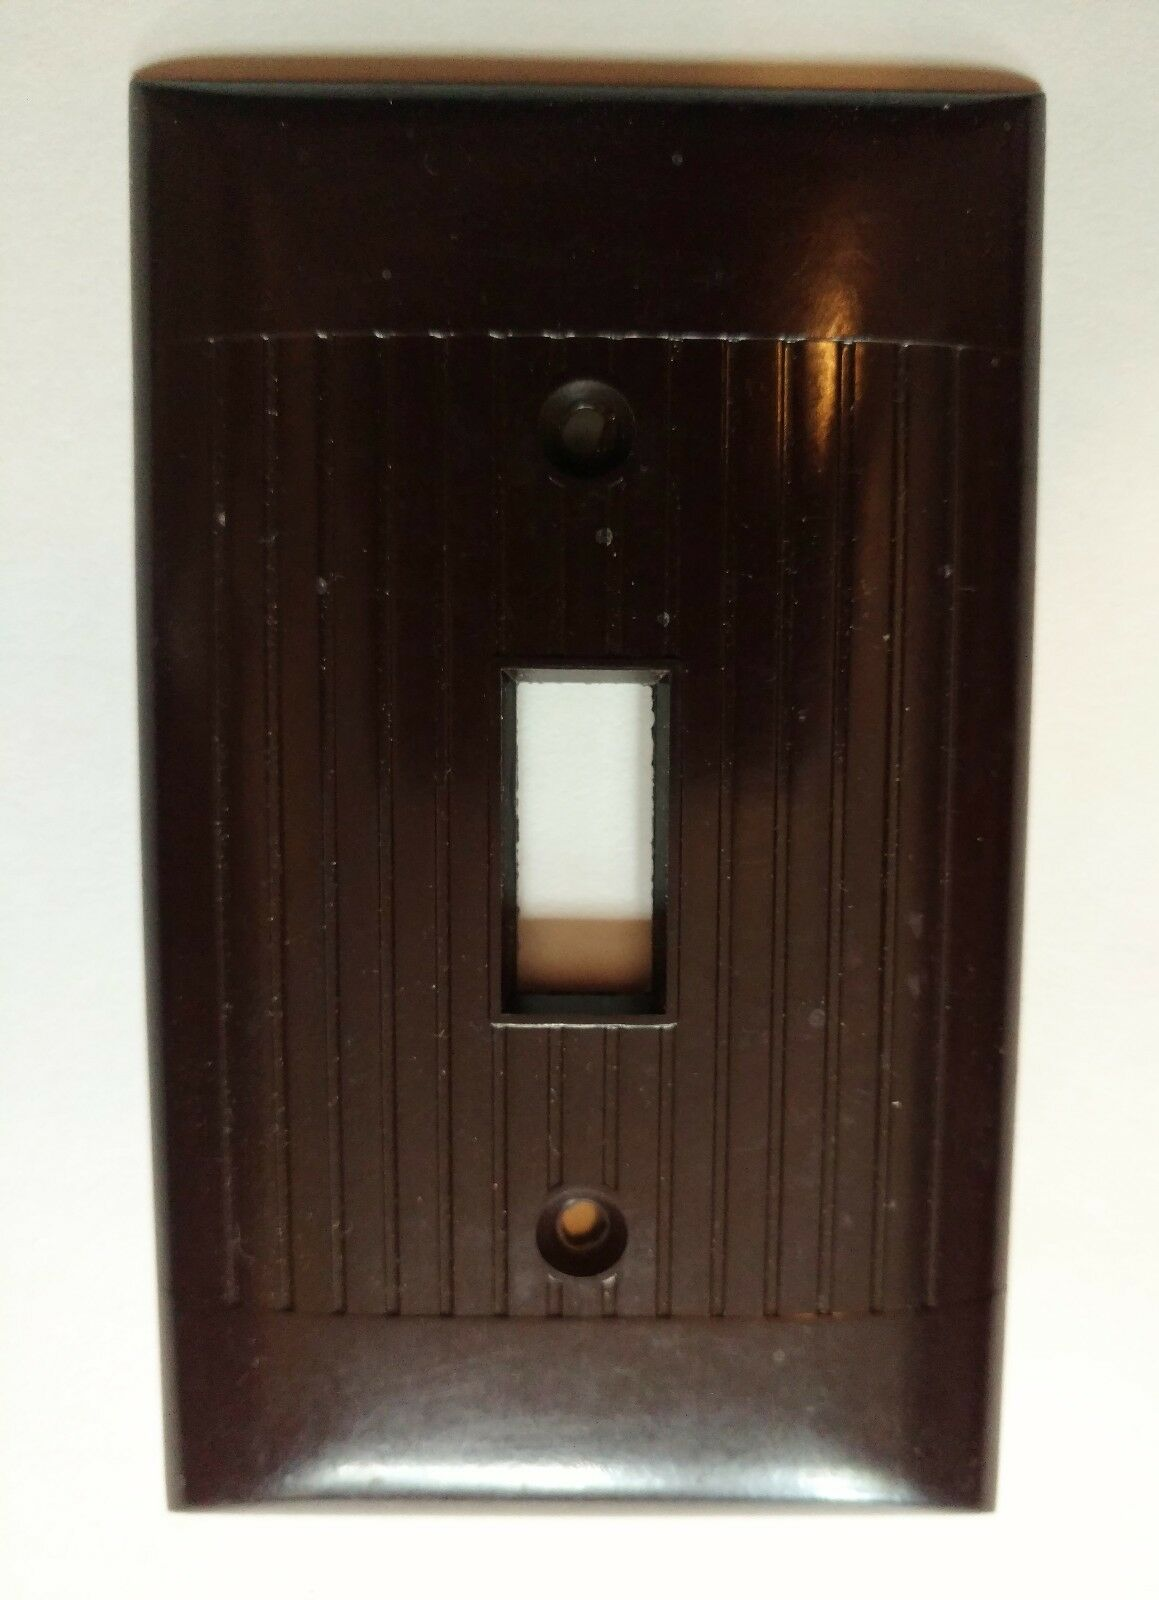 NOS Switch Plate Cover Ribbed BROWN Bakelite Single Sierra Electric Unused (30+)